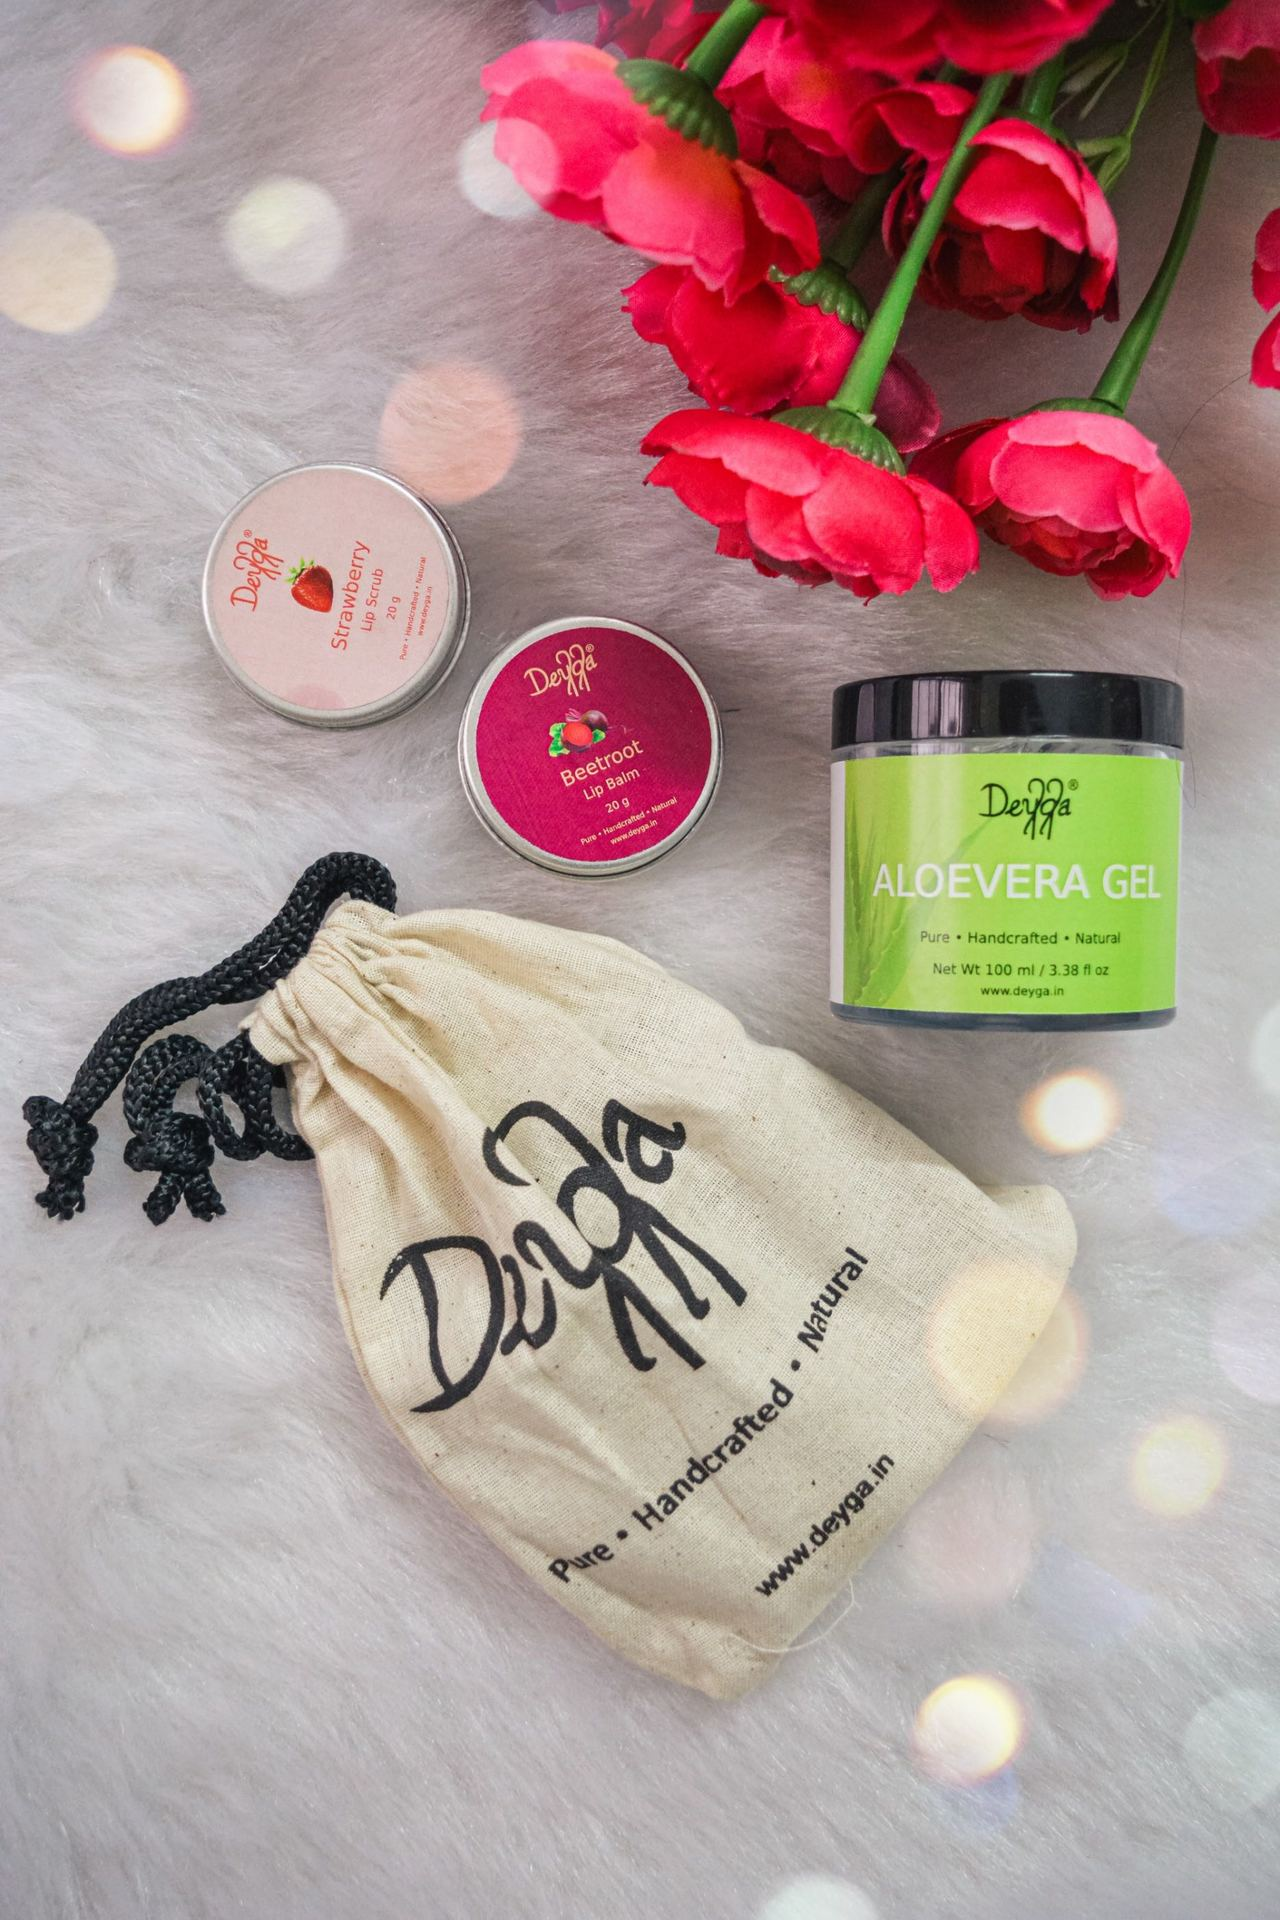 Deyga Handcrafted Skincare Review! image